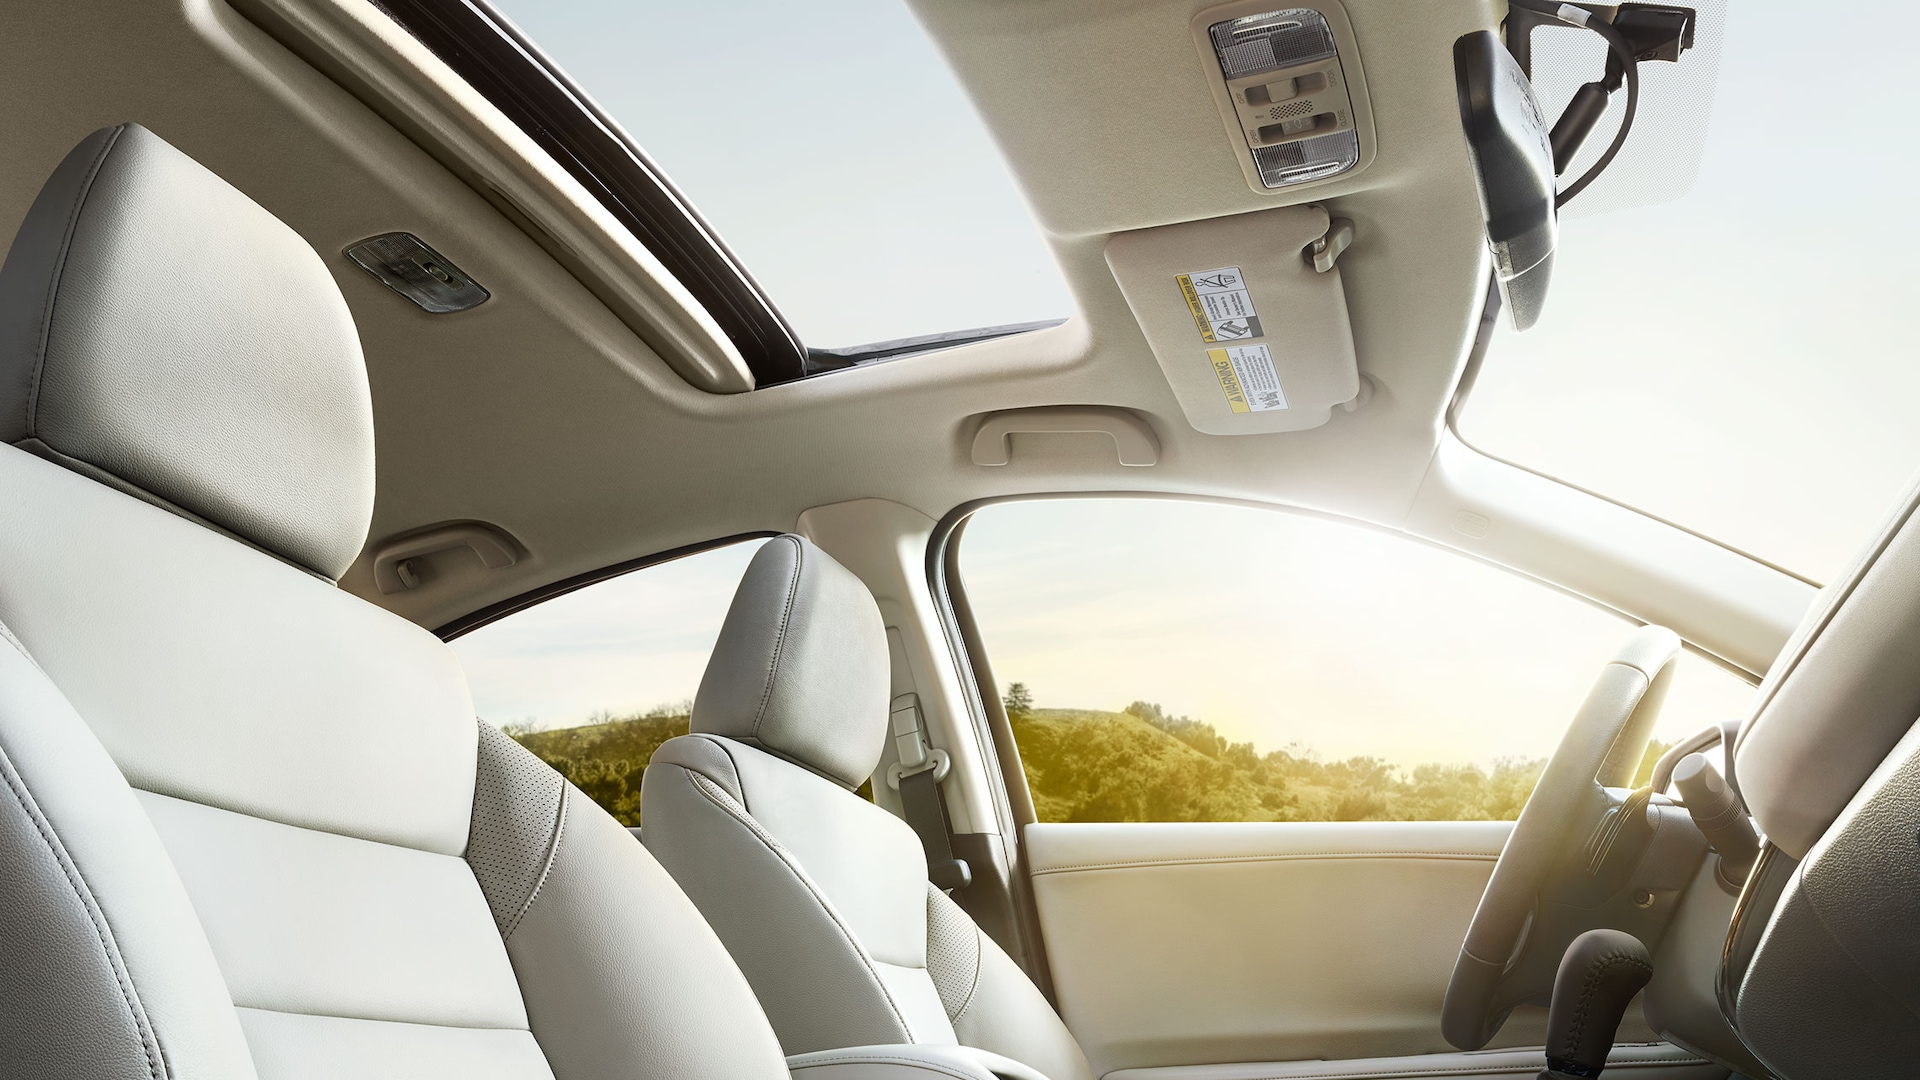 Passenger side view of open moonroof detail on the 2019 Honda HR-V EX-L in Gray Leather.